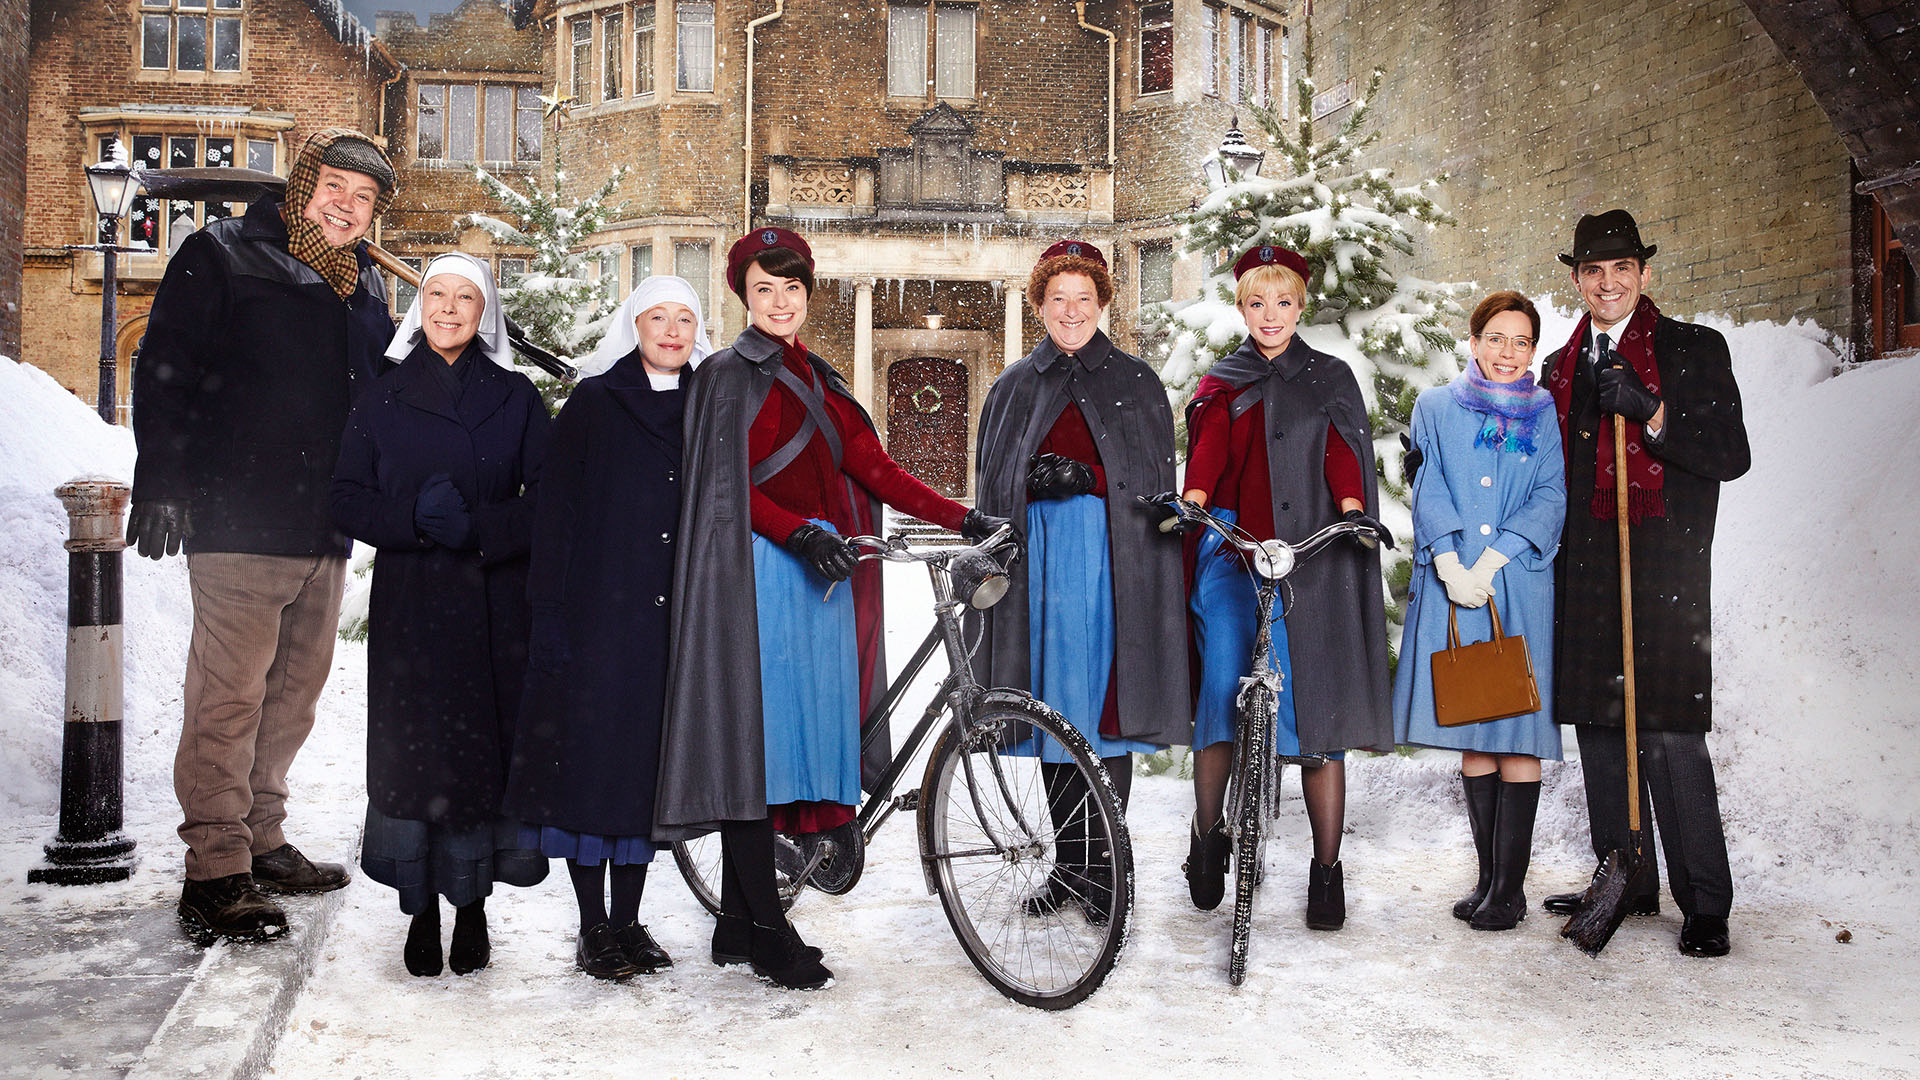 Call The Midwife Christmas Special 2019 Pbs Holiday Special 2018 | Call the Midwife | PBS